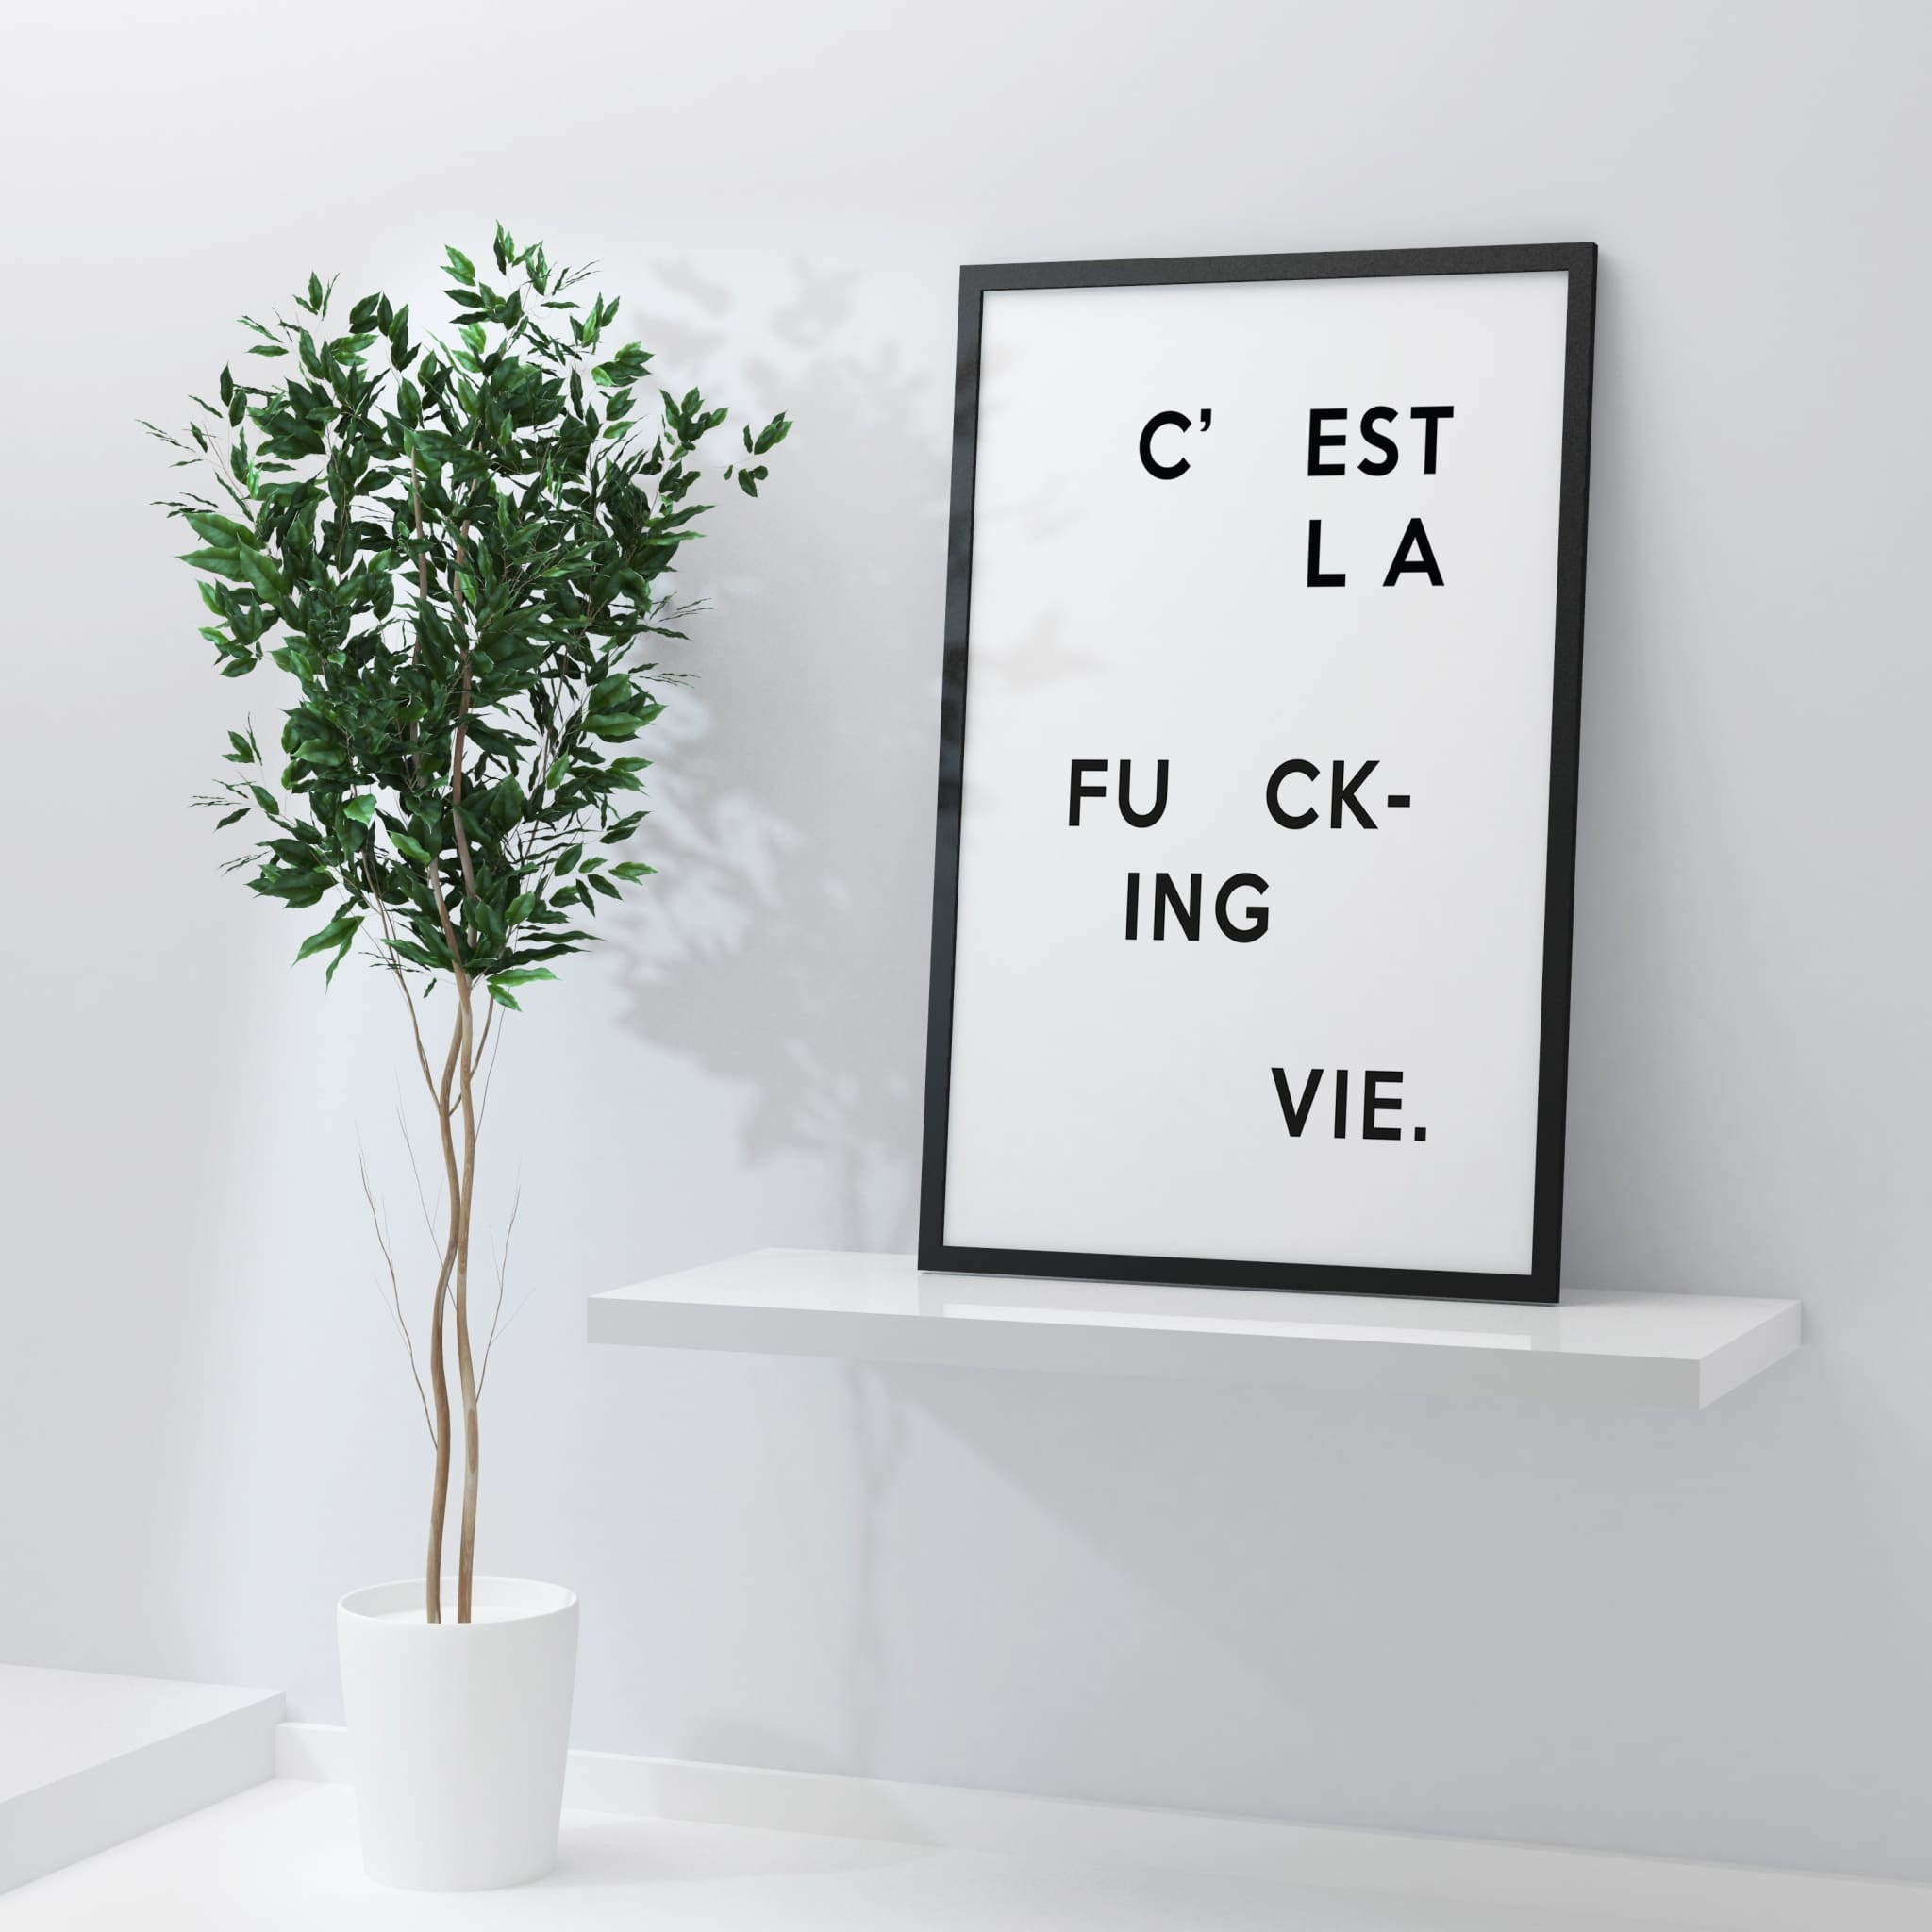 C'EST LA FUCKING VIE - HONEYMOON HOTEL